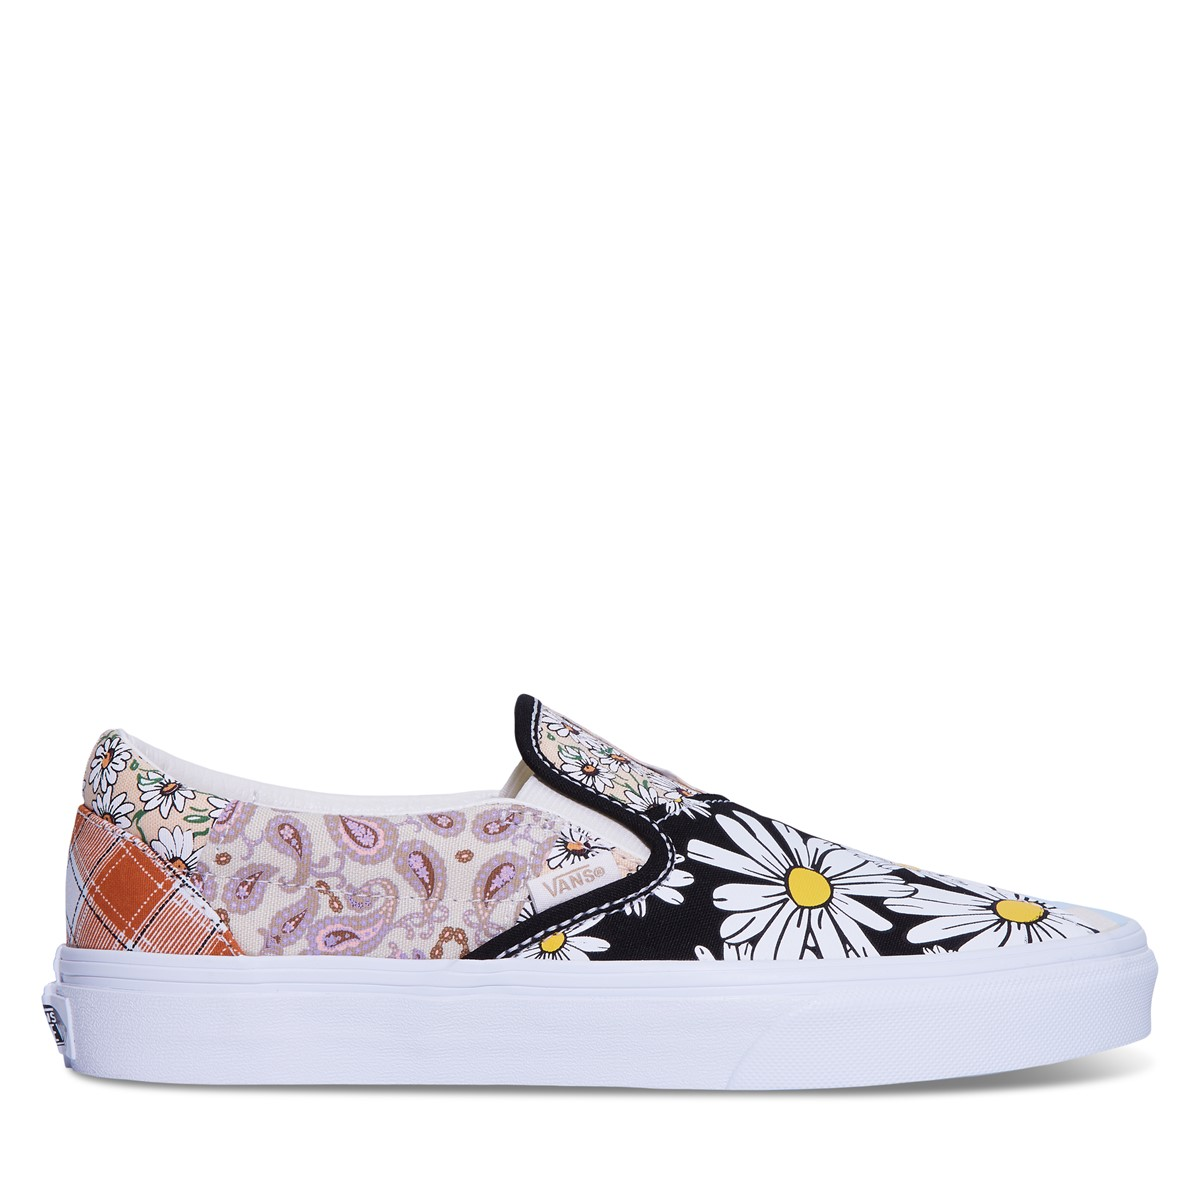 Meadow Patchwork Classic Slip-On Sneakers